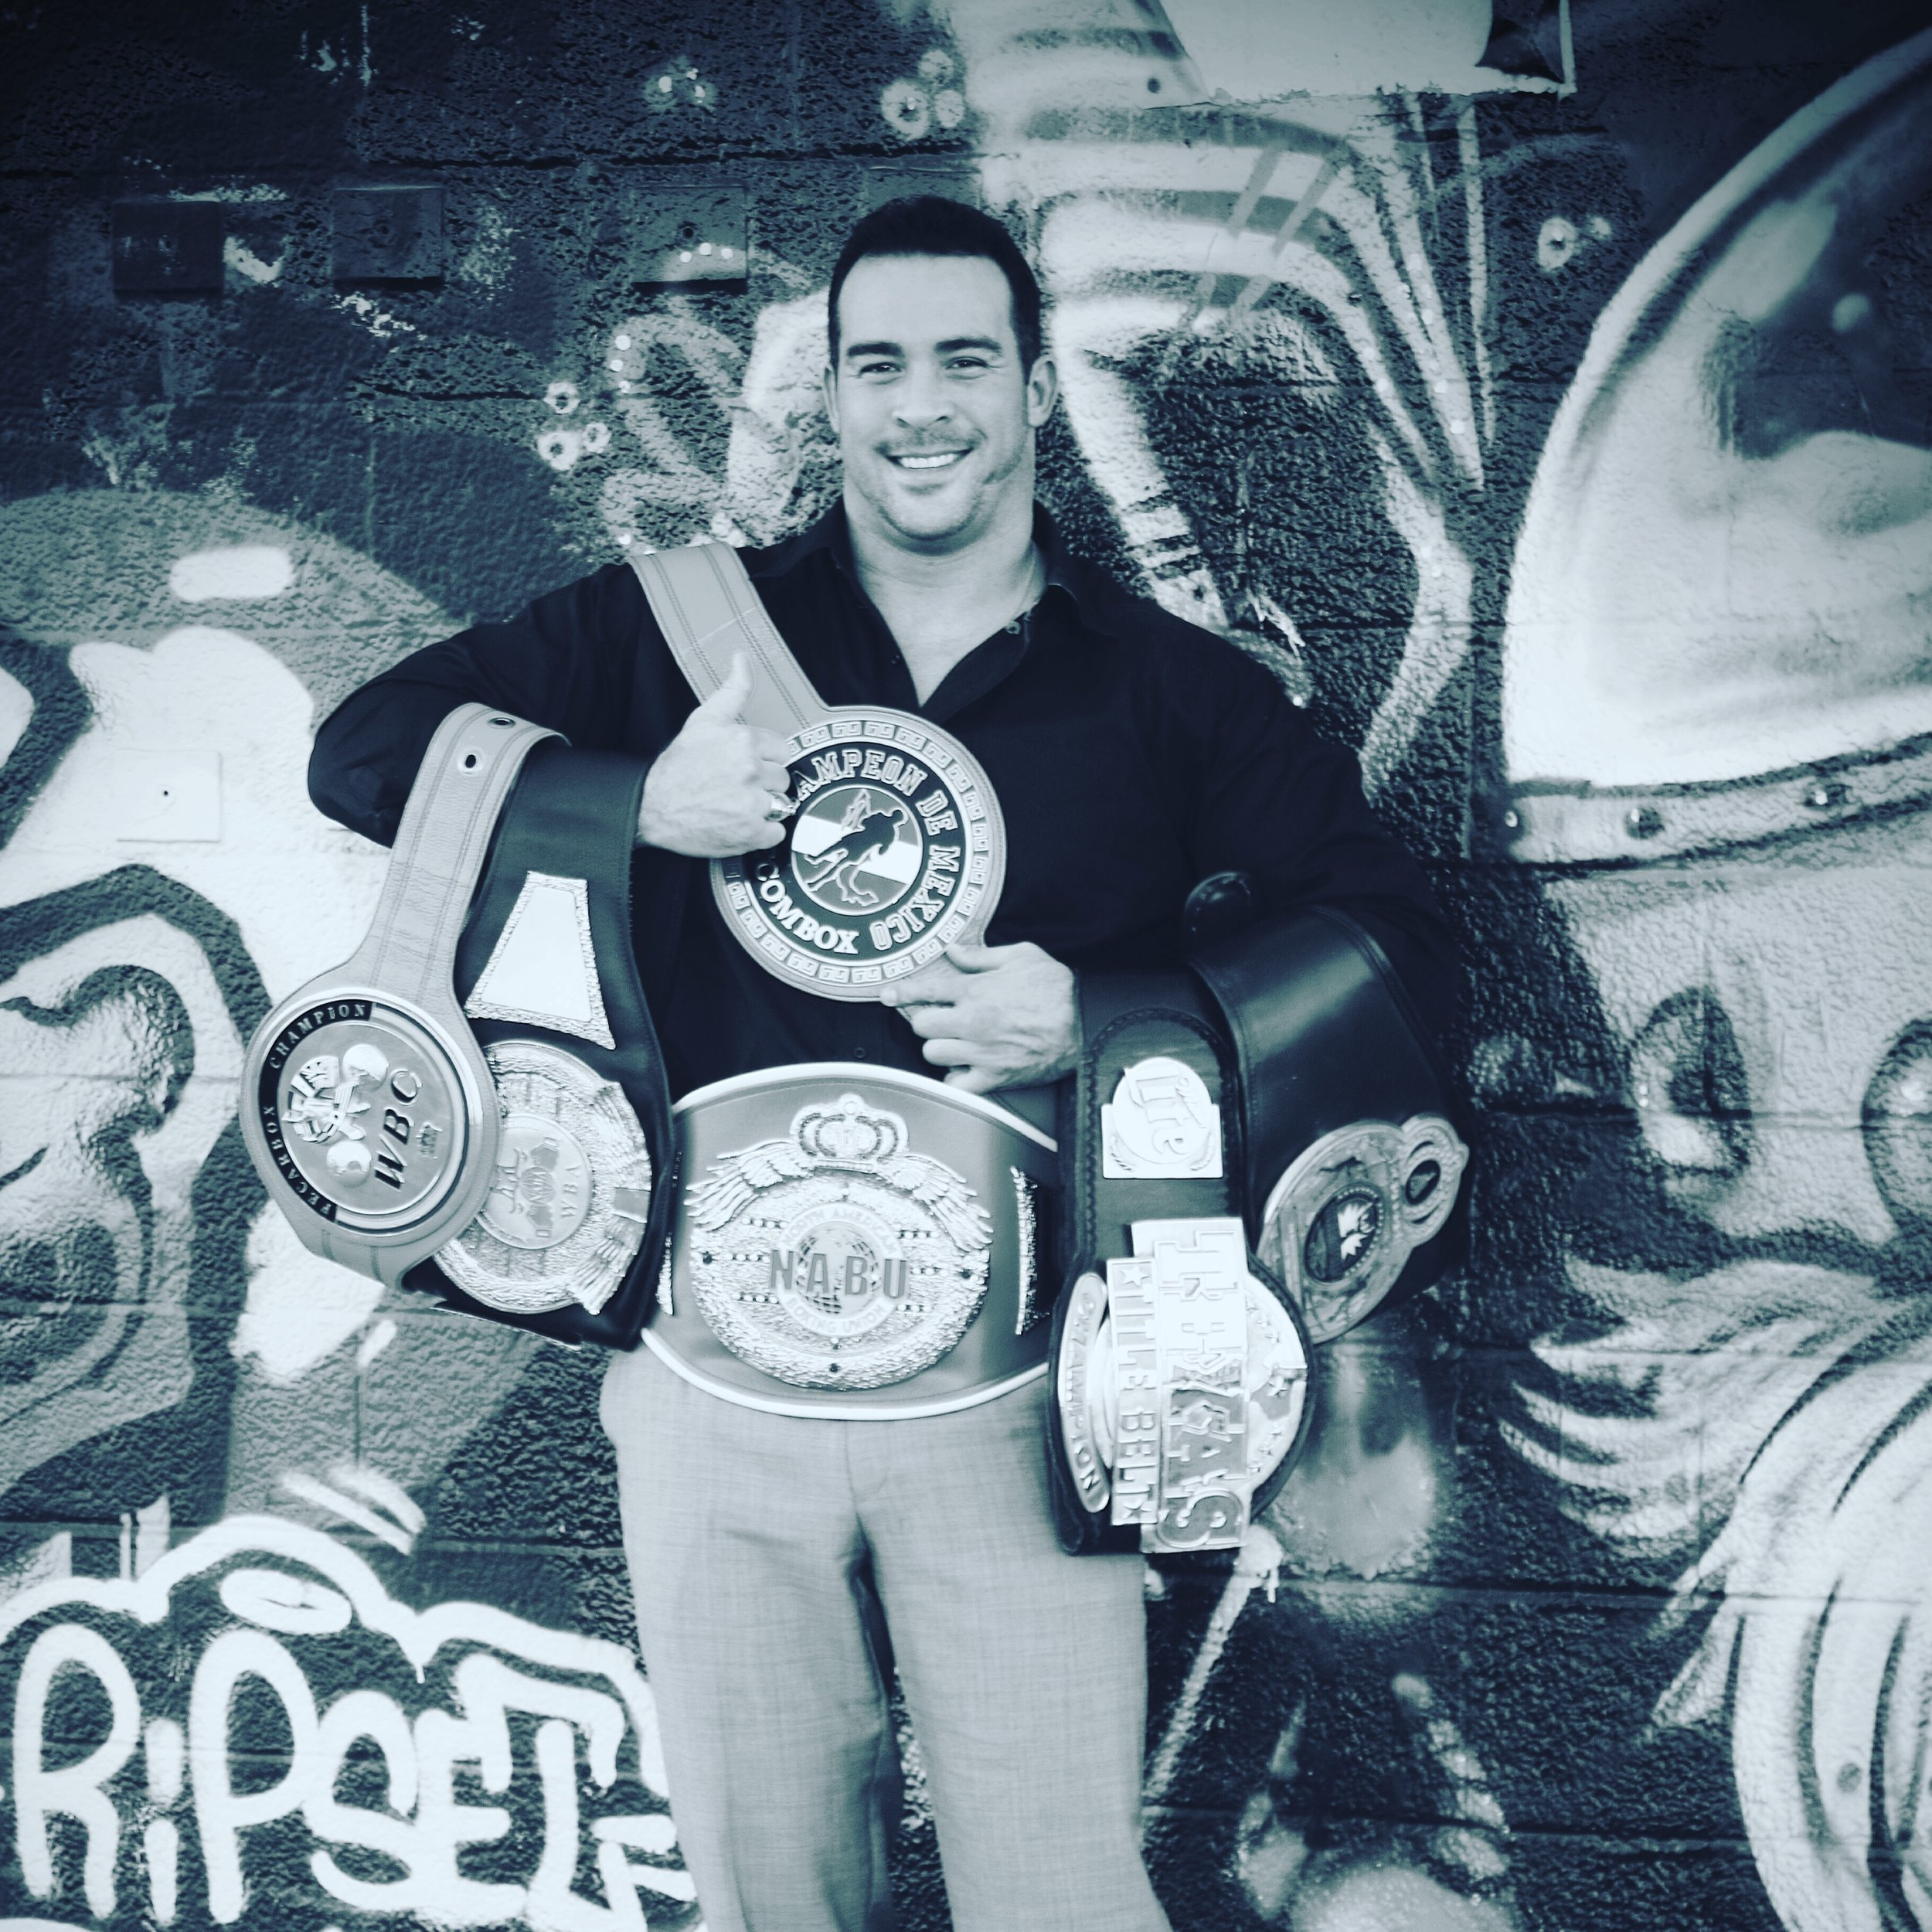 The Champ w/his belts